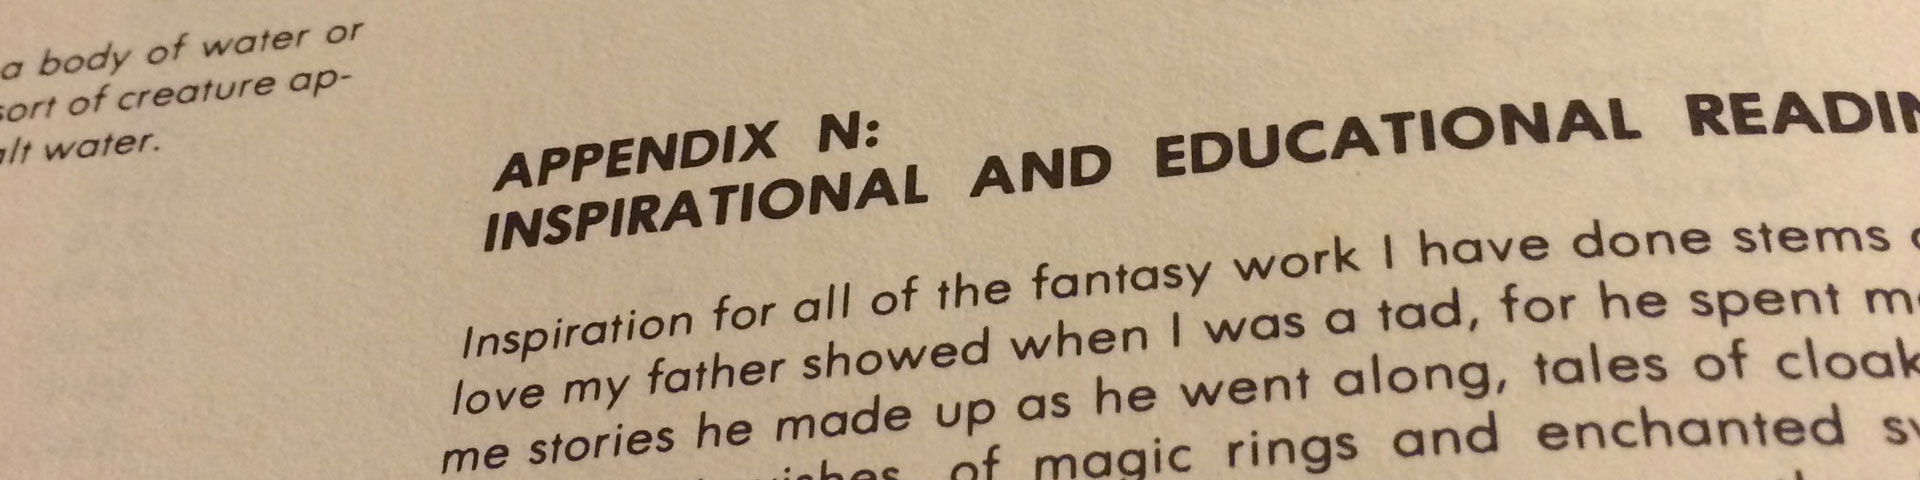 A close up photo of Appendix N, showing the header and a few introductory lines of text.